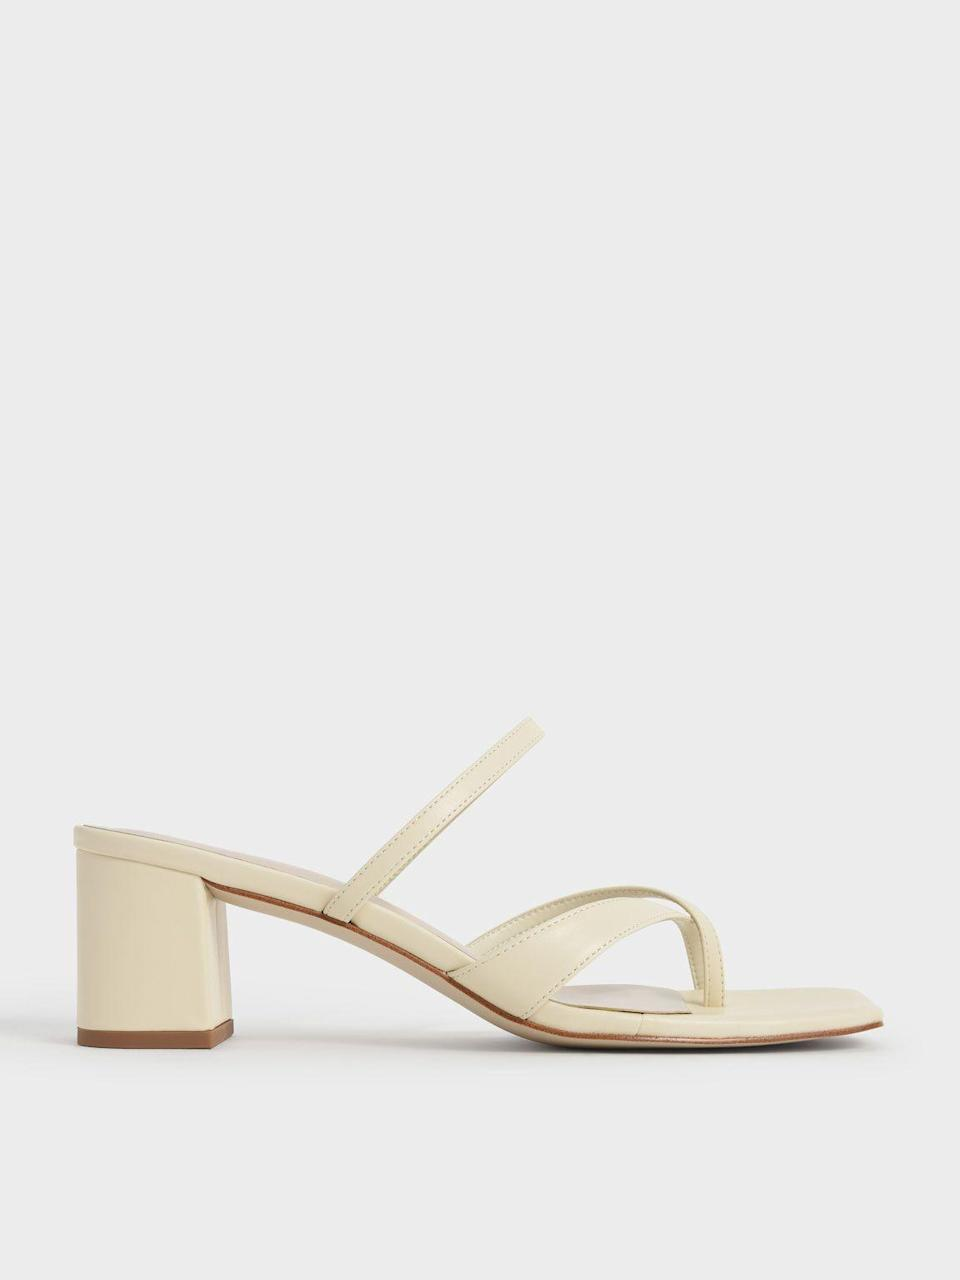 """<p><strong>Charles & Keith </strong></p><p>charleskeith.com</p><p><strong>$46.00</strong></p><p><a href=""""https://go.redirectingat.com?id=74968X1596630&url=https%3A%2F%2Fwww.charleskeith.com%2Fus%2Fshoes%2FCK1-60050932_CHALK.html&sref=https%3A%2F%2Fwww.marieclaire.com%2Ffashion%2Fg27205502%2Fcomfortable-walking-sandals-women%2F"""" rel=""""nofollow noopener"""" target=""""_blank"""" data-ylk=""""slk:SHOP IT"""" class=""""link rapid-noclick-resp"""">SHOP IT</a></p><p>Wearing bright colors seems fun and all, but this pair of strappy white shoes from Charles & Keith will go with literally every single item in your closet. The toe loop and low block heel make them perfect for all-day wear. </p>"""